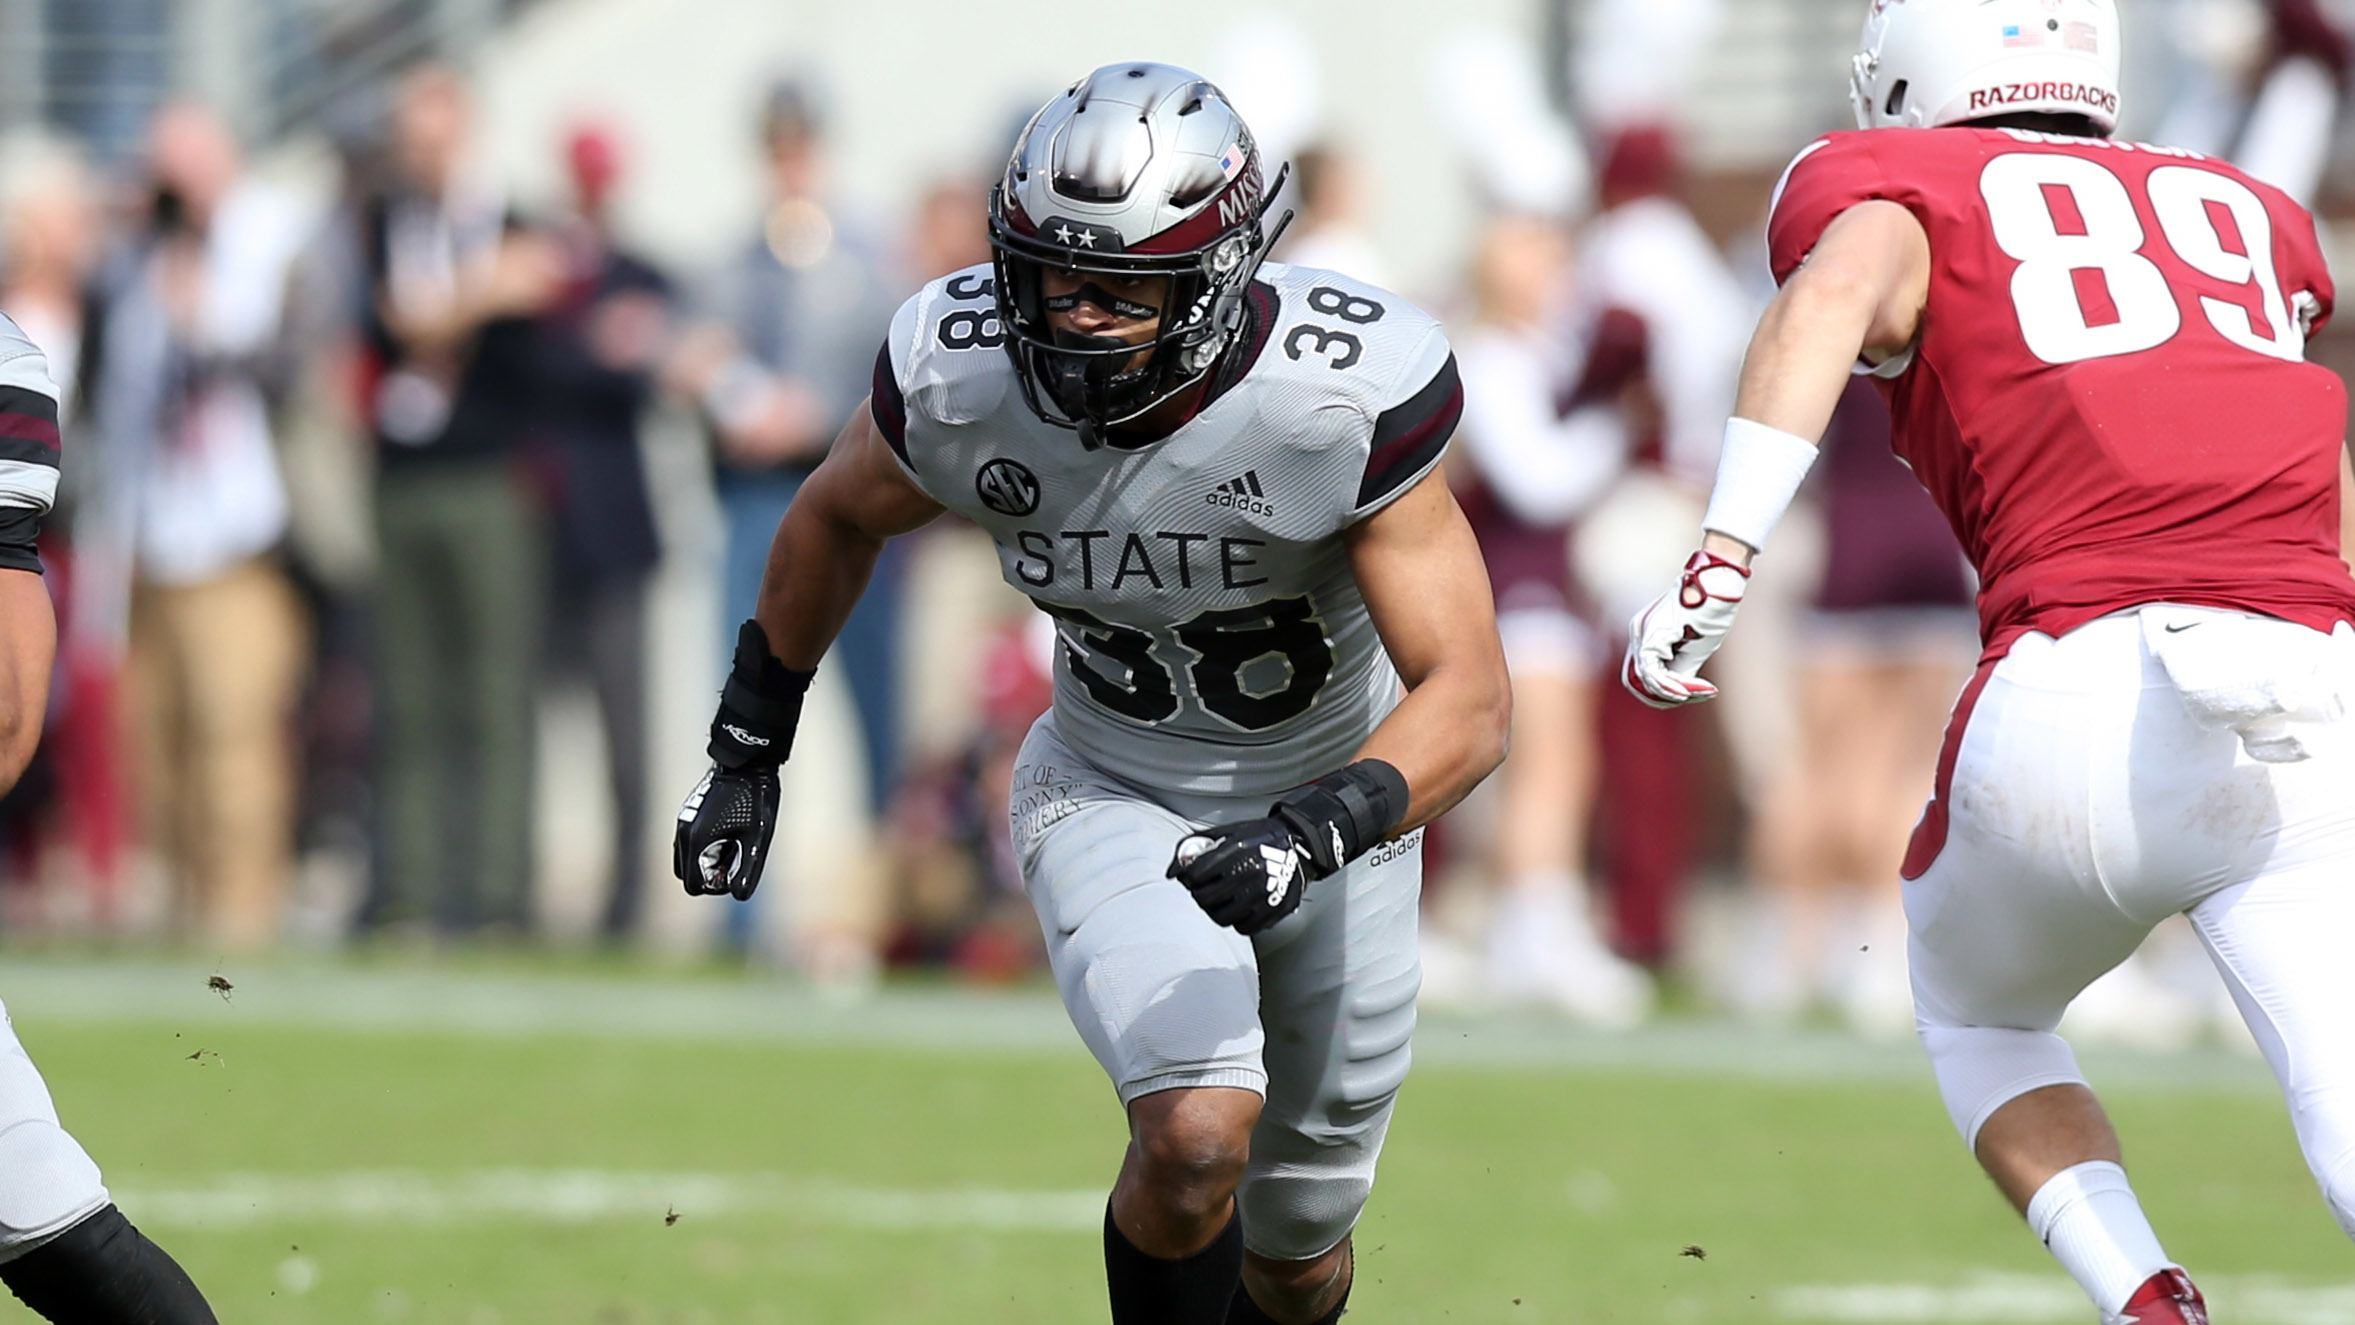 Cowboys Draft: 3 Safeties To Satisfy Fans' Free Agent Craving